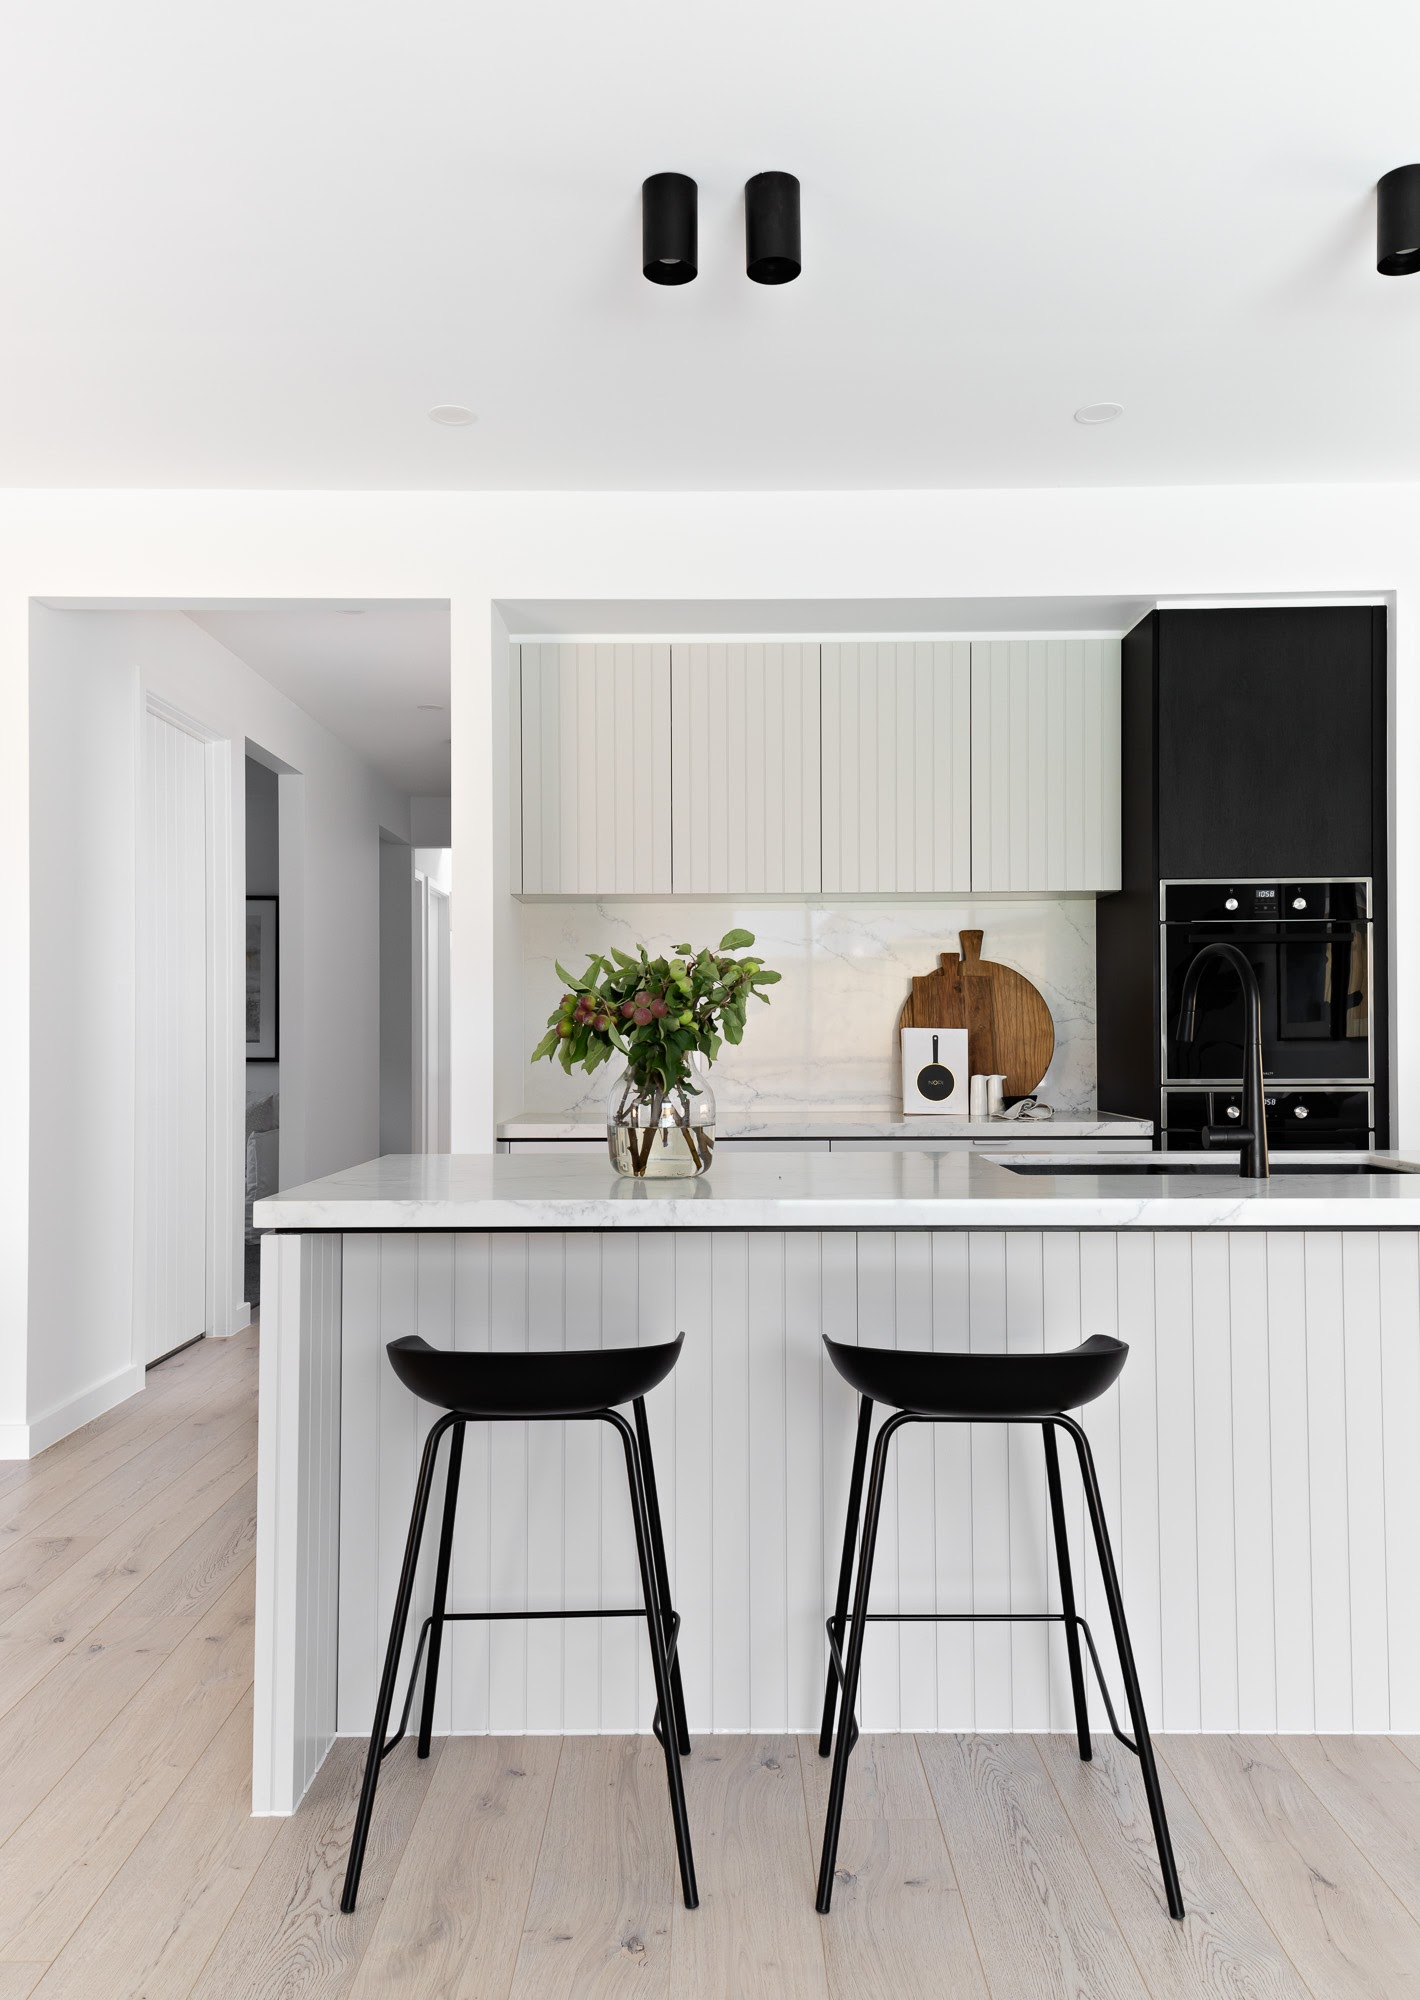 The 5 Top Interior Home Design Trends for 2021